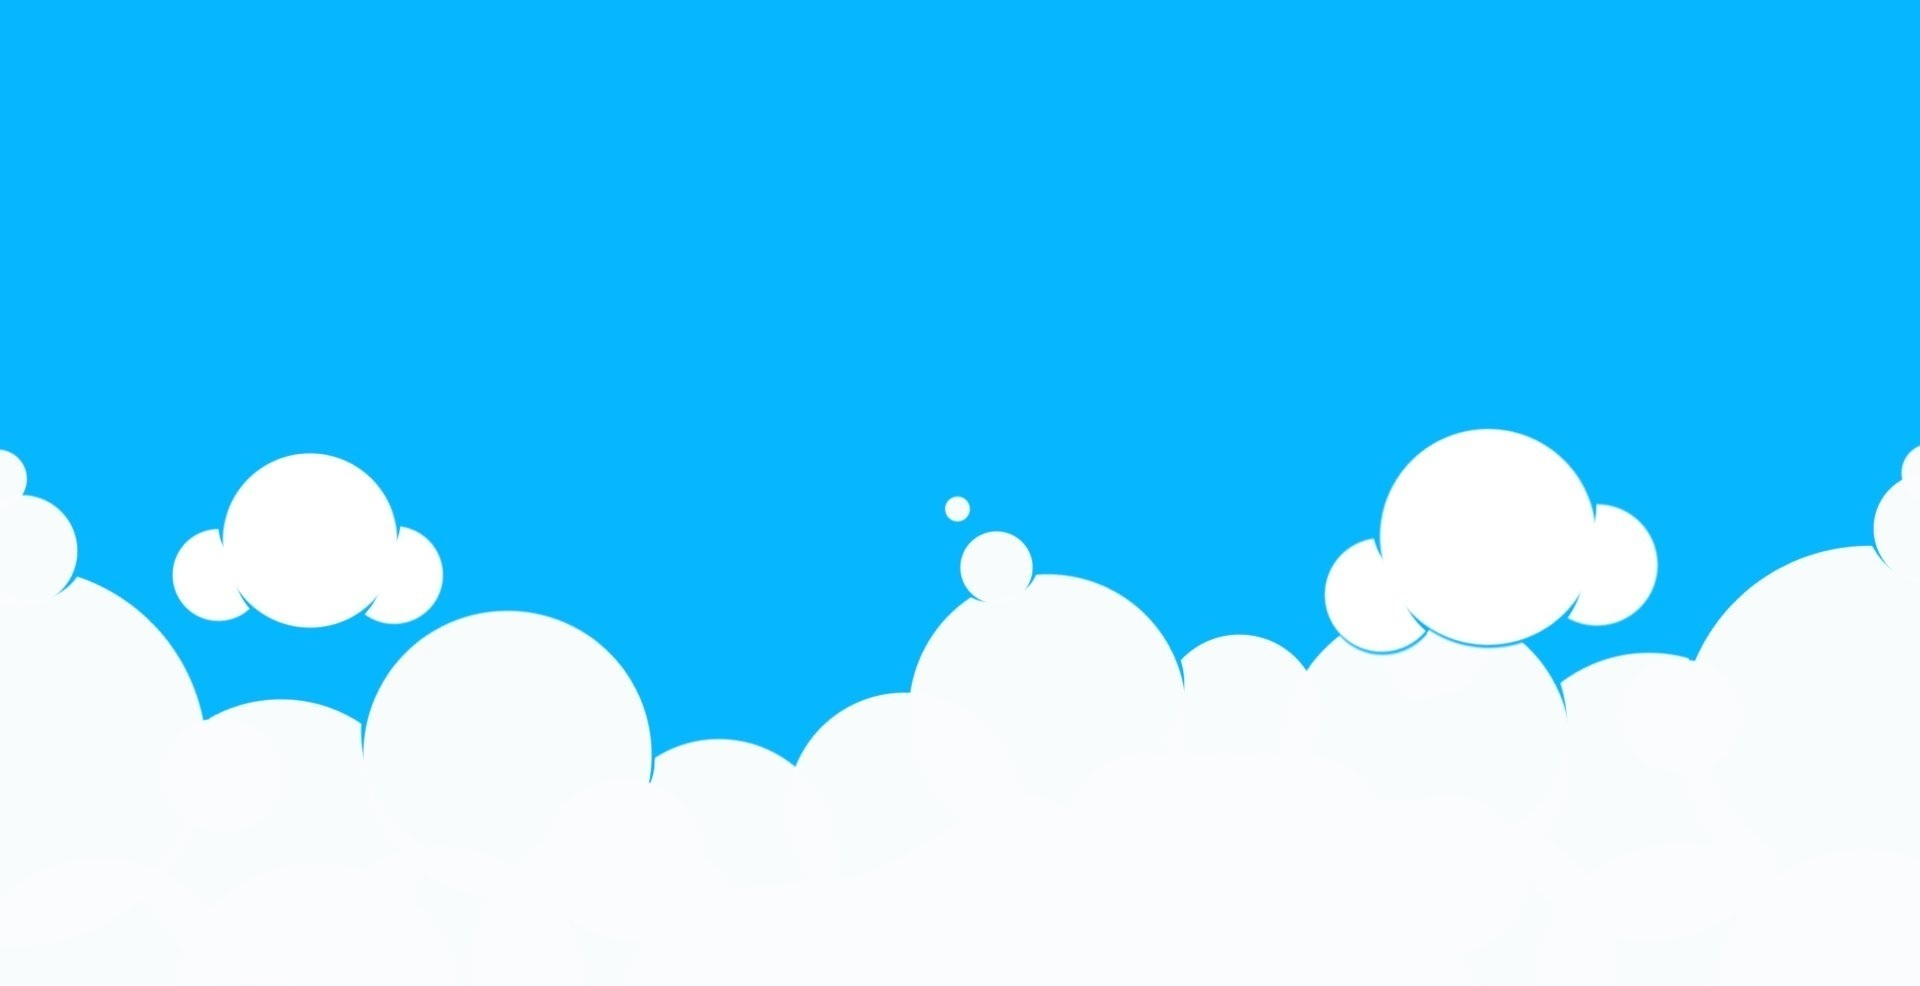 Sky Clouds Clipart - Clipart Kid